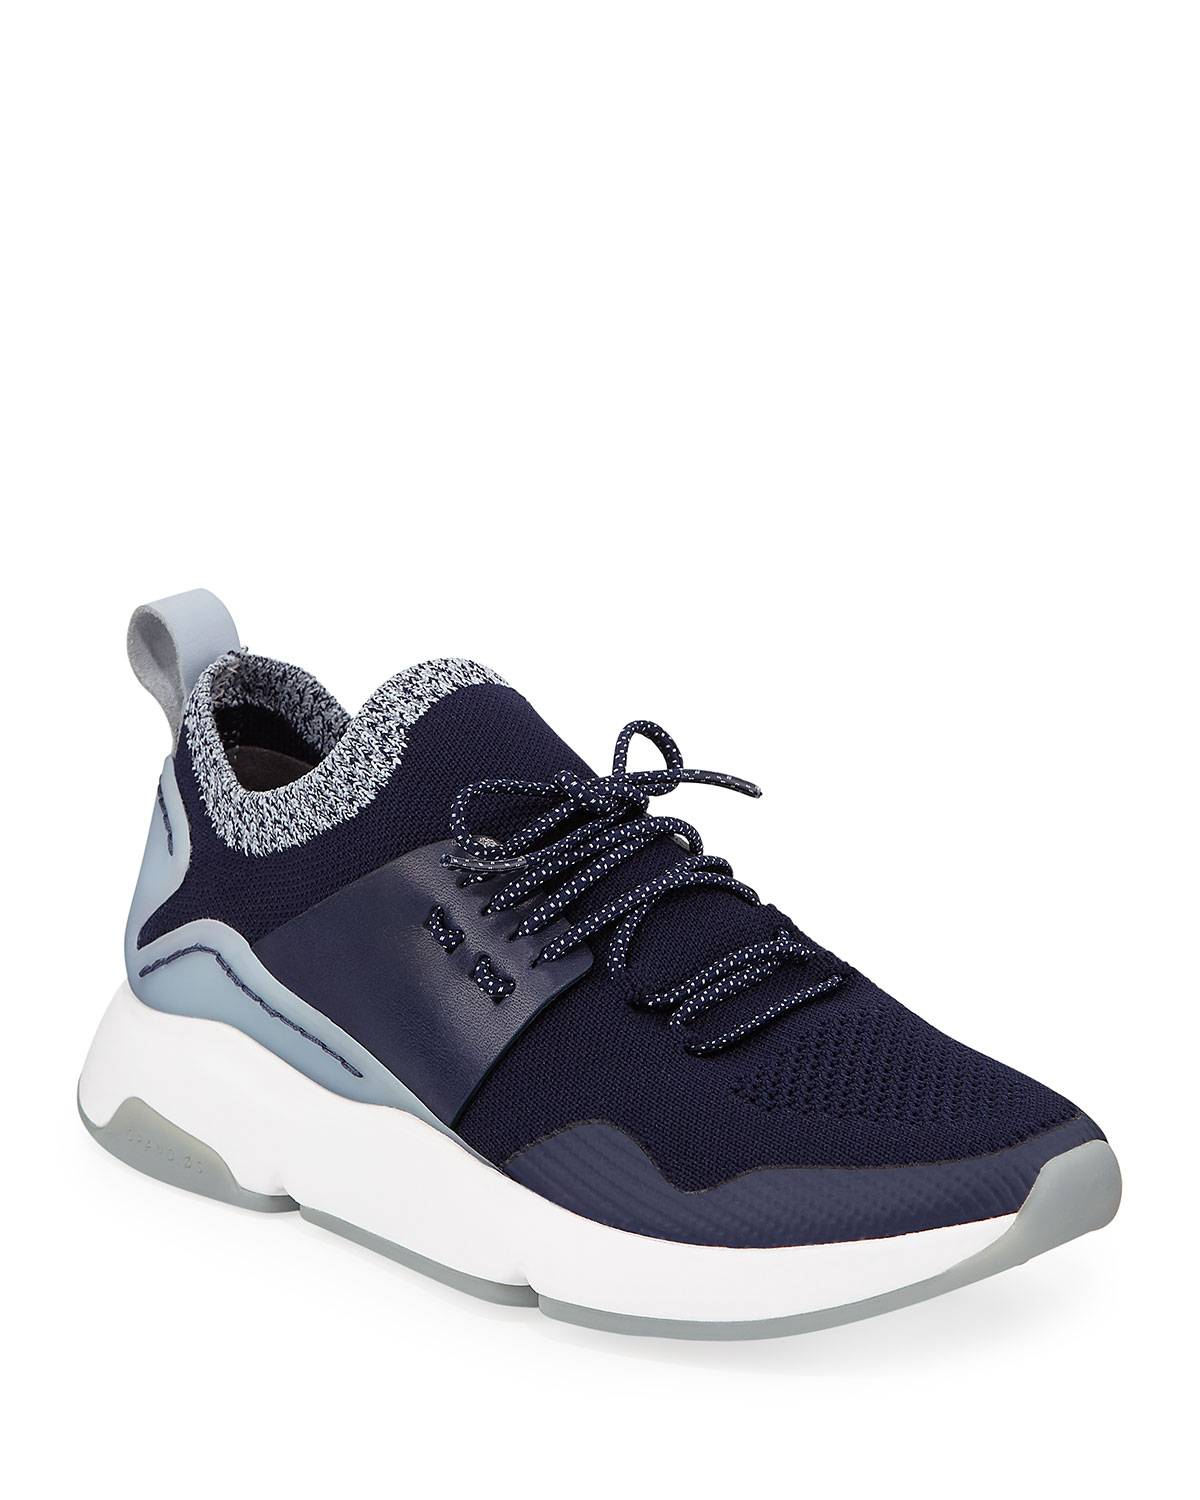 Cole Haan Zerogrand Motion Stretch-Knit Sneakers